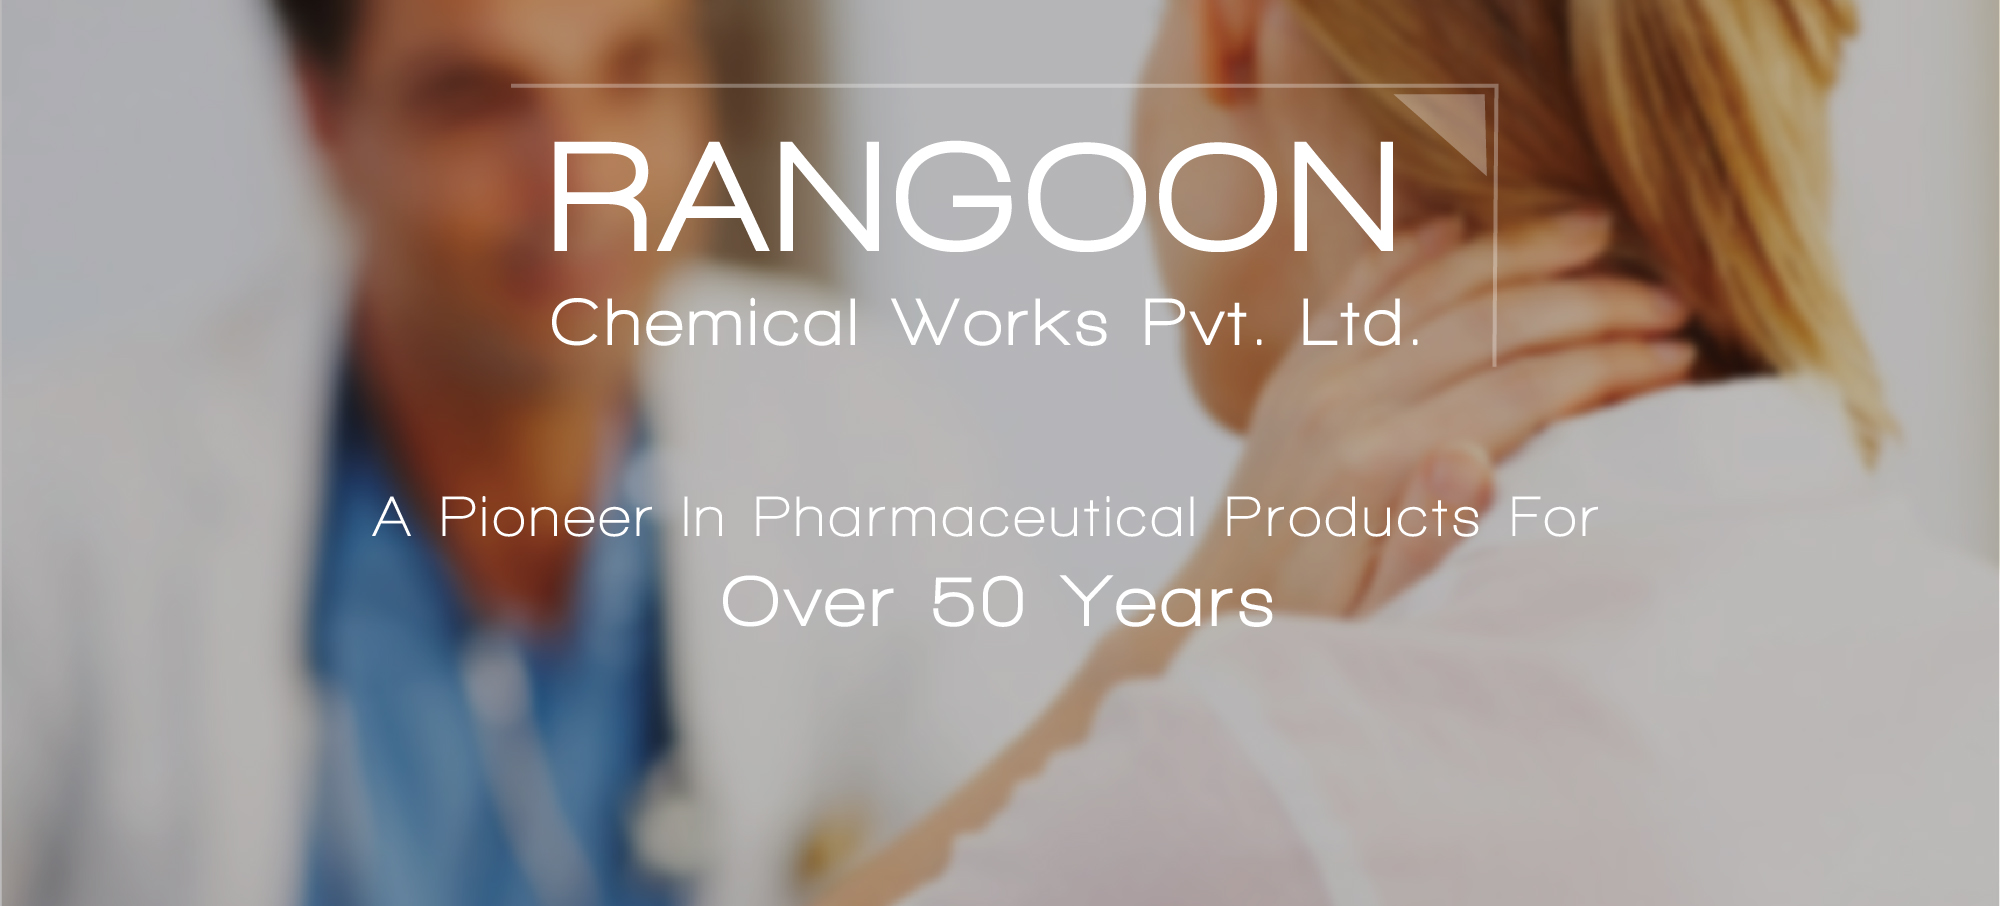 Rangoon Chemicals - Manufacturer of Balm, Flying Balm, Flying Tiger Cub Balm, Oil Balm Ayurvedic Medicines, Tonics & Drugs